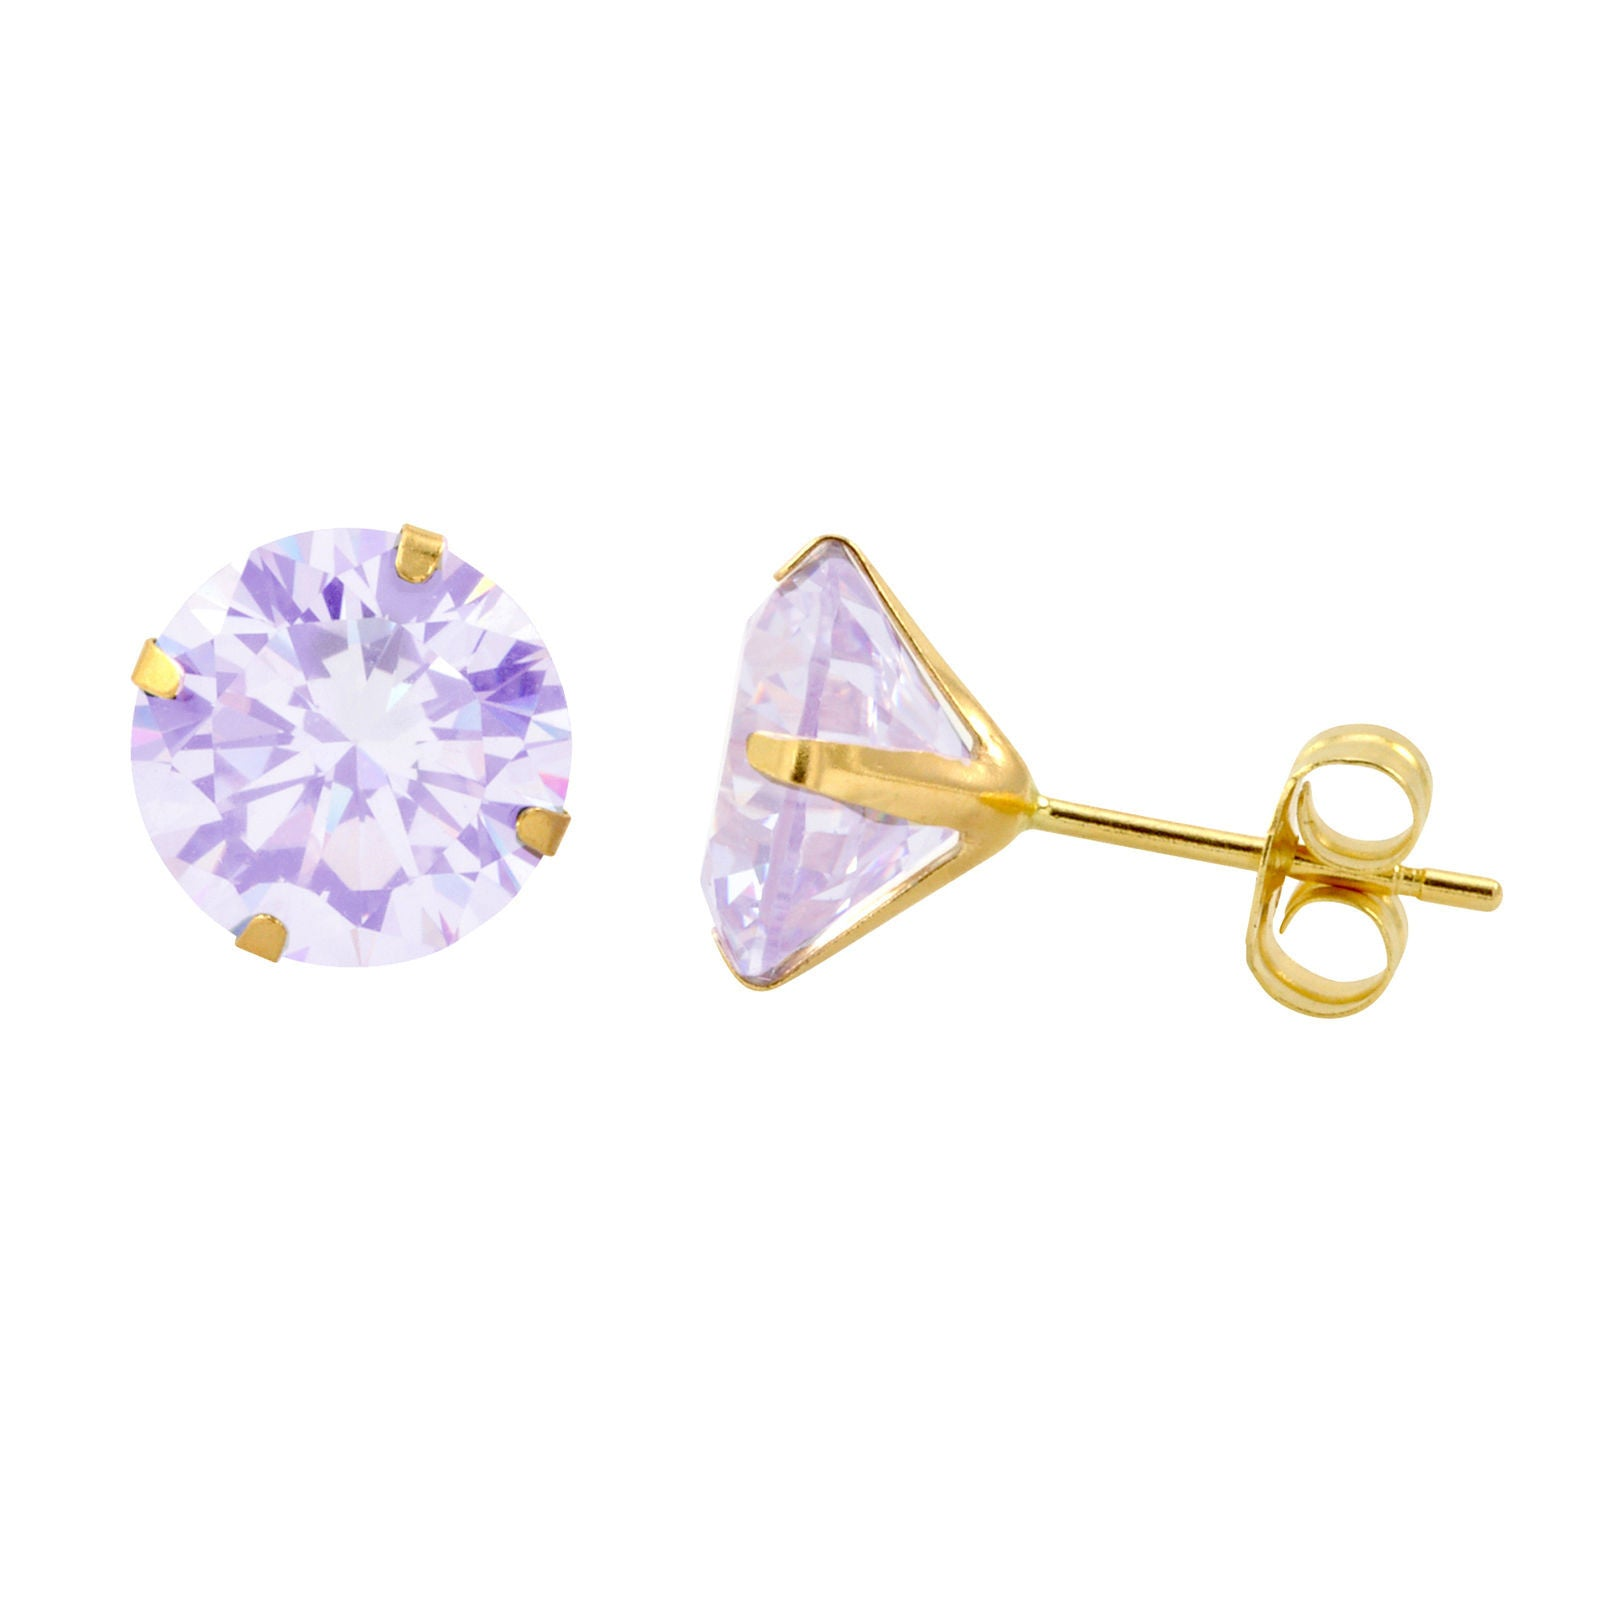 earrings and lewis johnlewis glam rsp online gold zirconia soul main stud pdp sabo pearl at rose buythomas john thomas